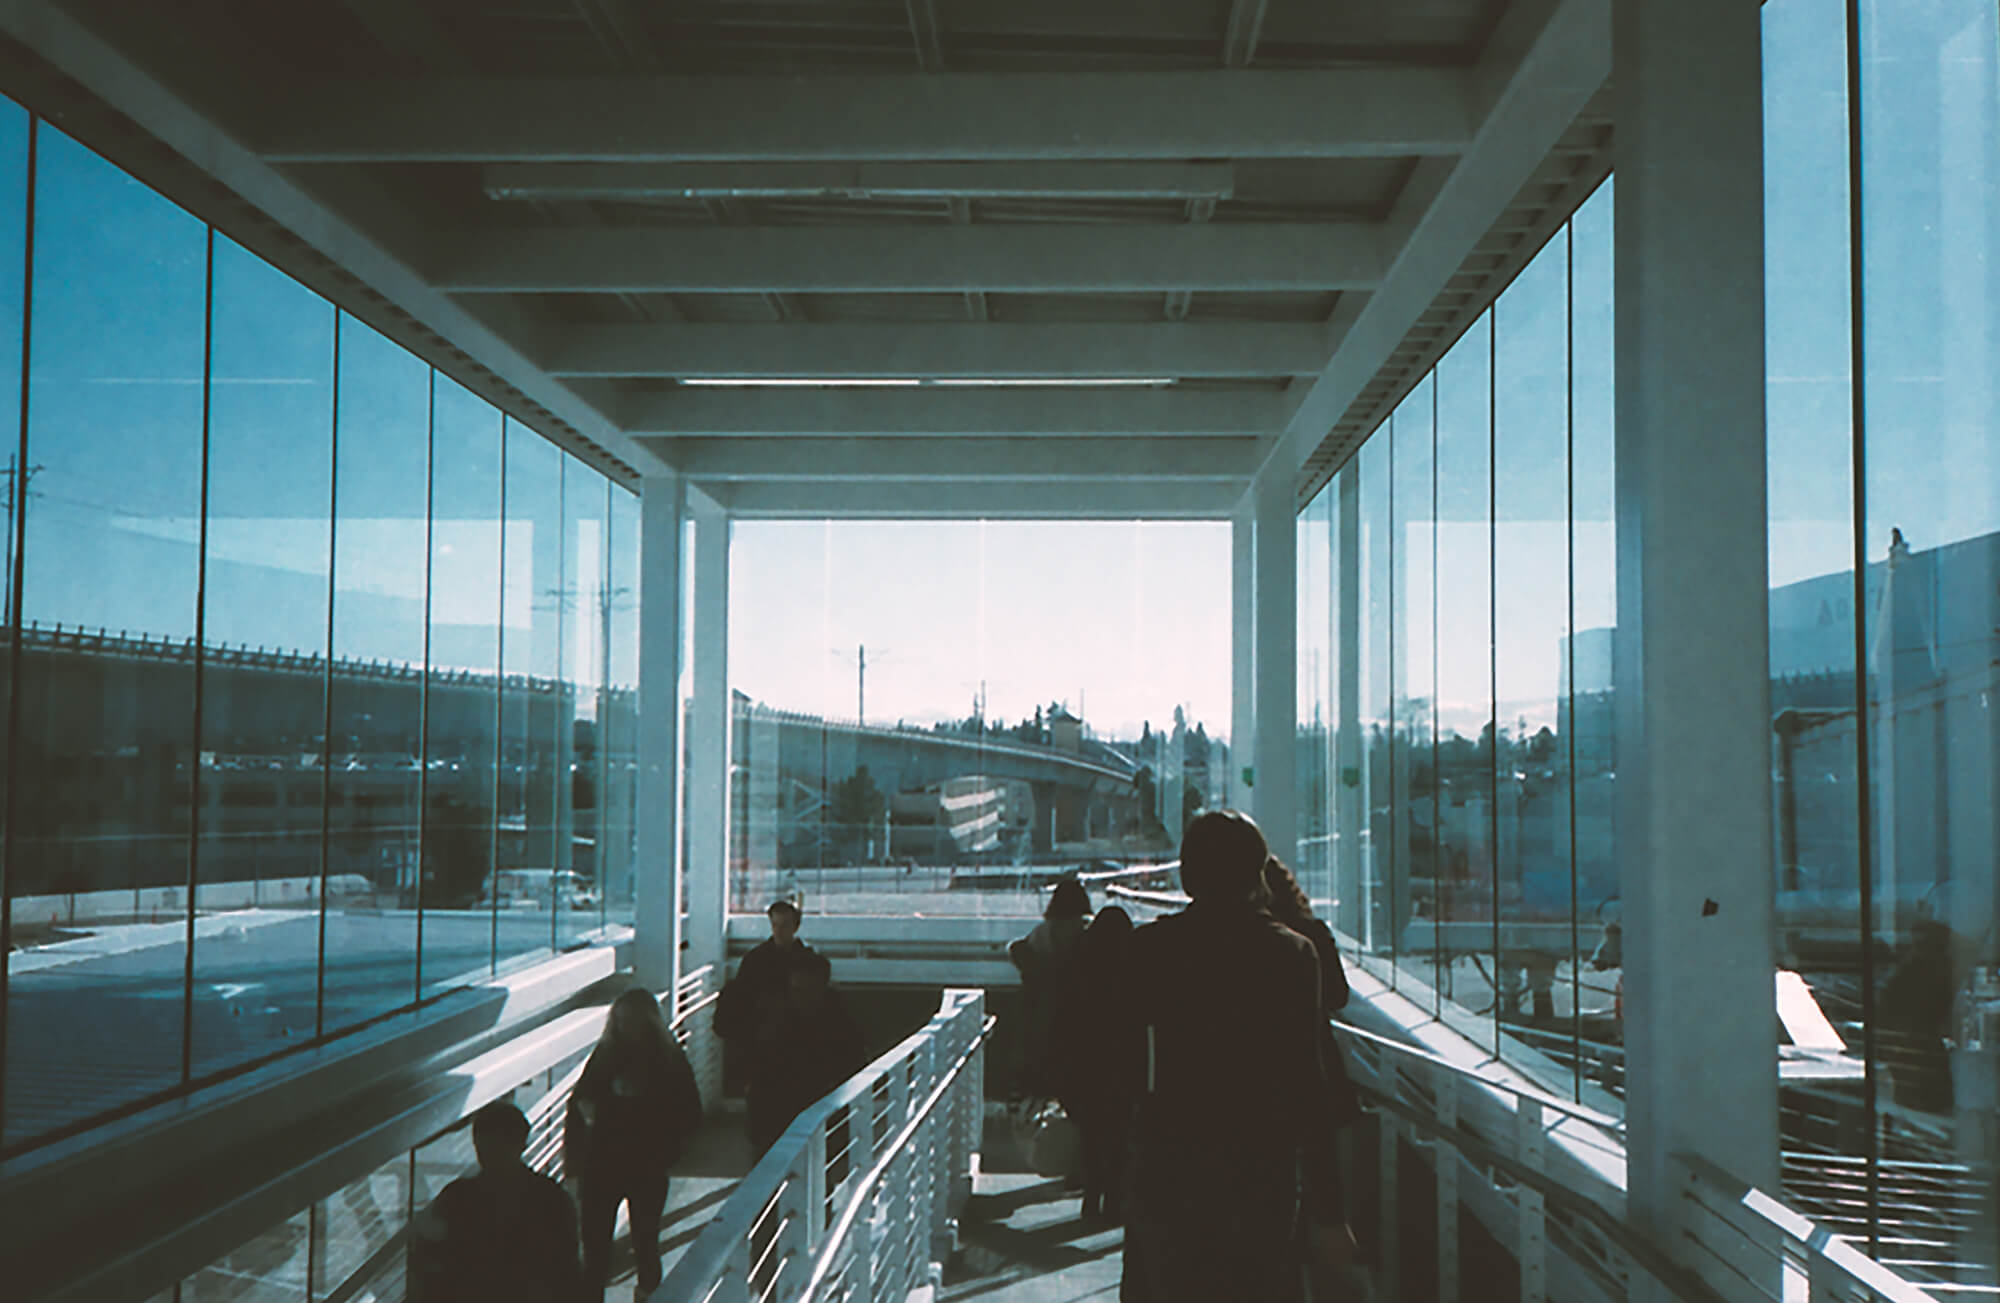 Seattle airport boarding United States with glass windows